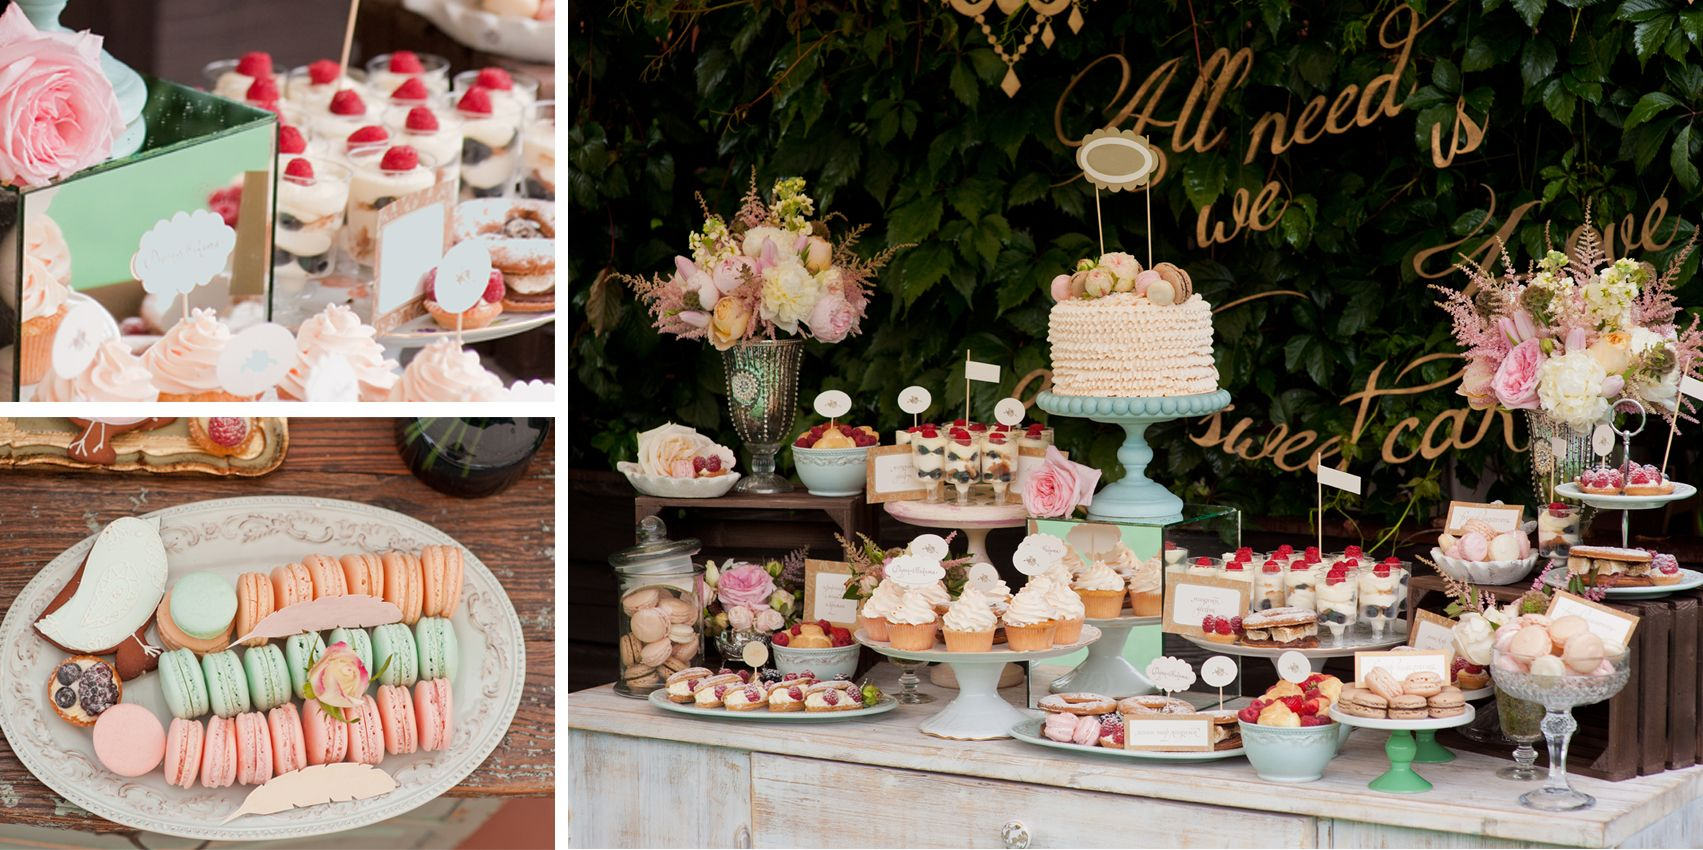 Wedding Trends Cyprus—Candy Bars, by Isaia Xoreve